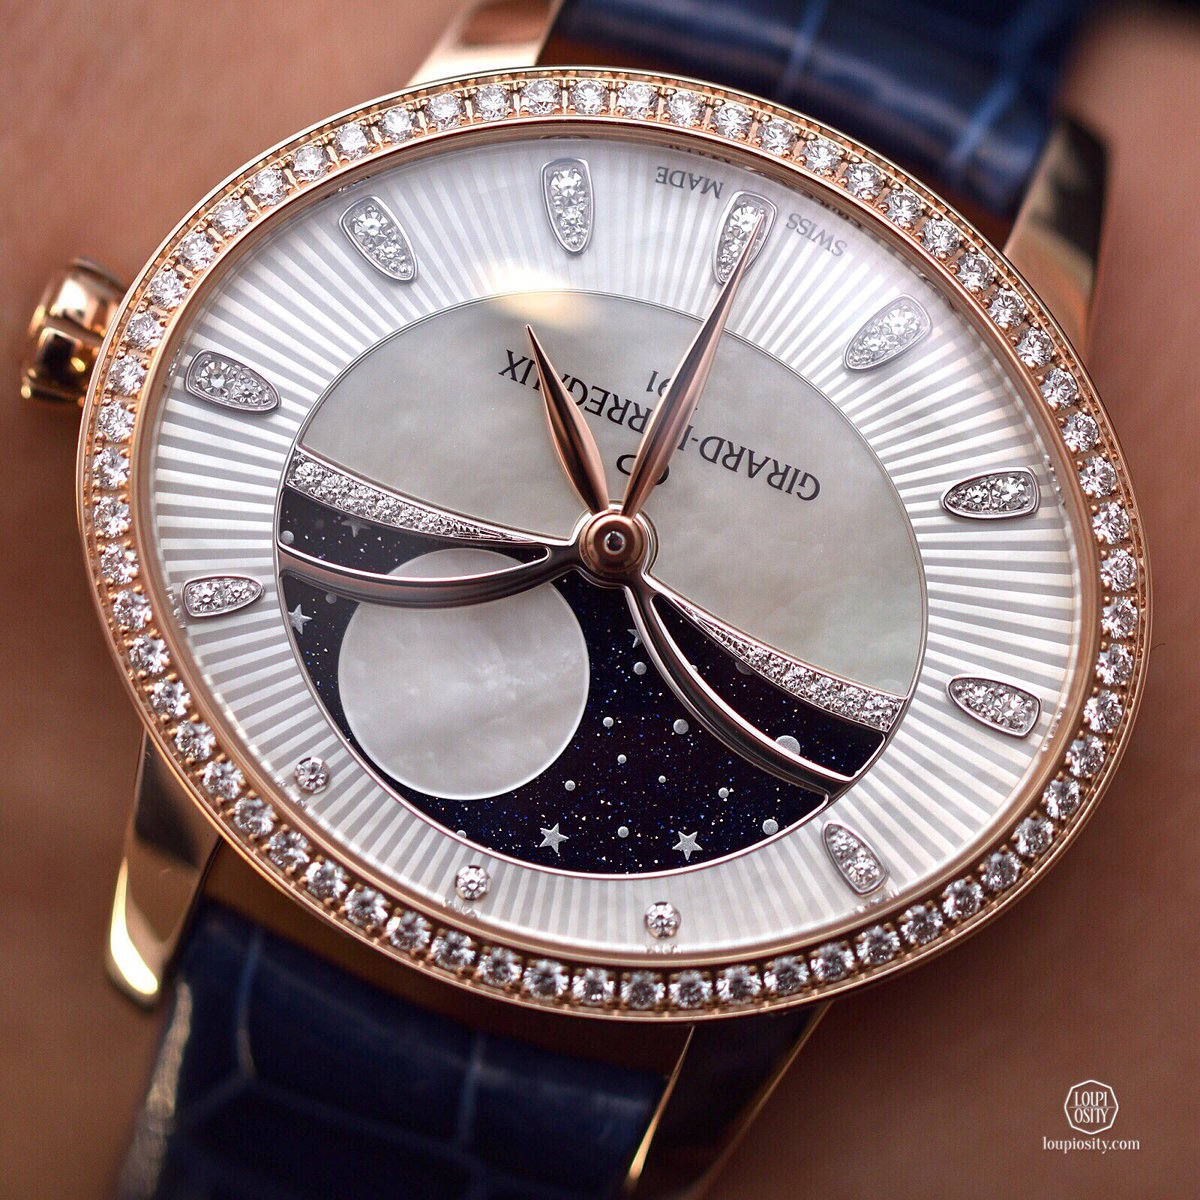 Cat's Eye #Celestial @GirardPerregaux #onwrist - mother-of-pearl guilloché dial, aventurine #moonphase indicator, set with #diamonds<br>http://pic.twitter.com/Dsfeyptumg